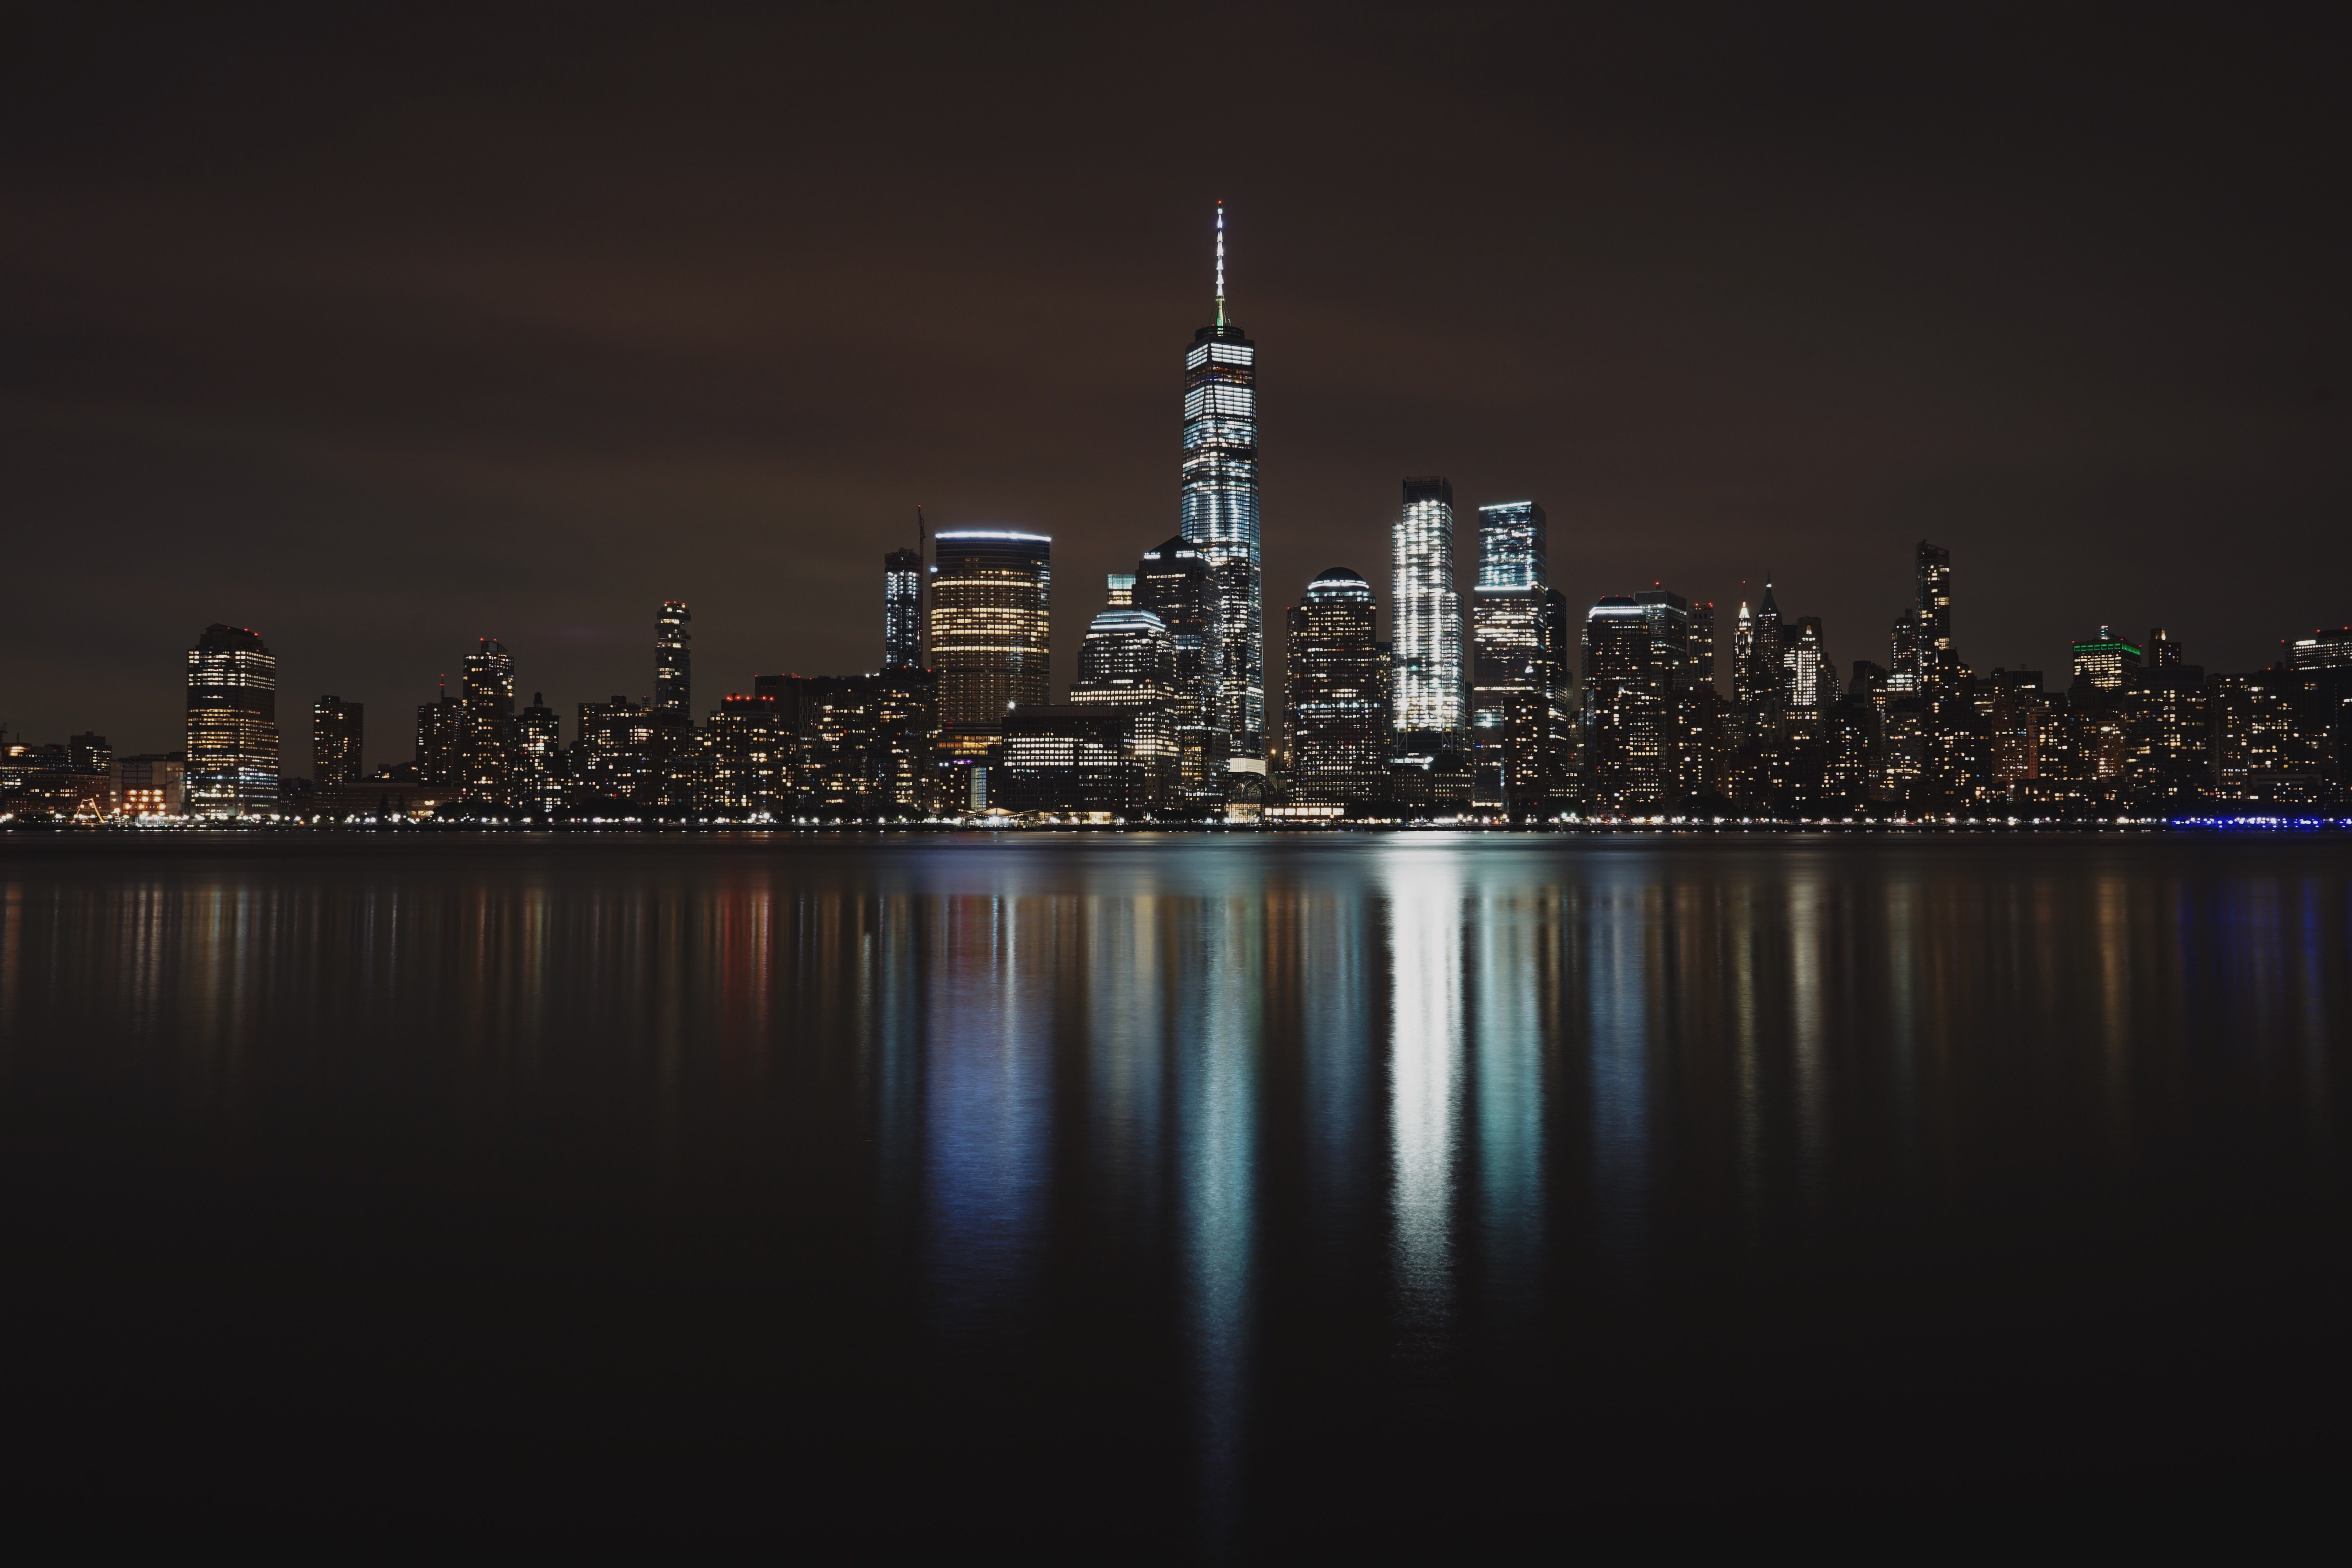 New York City Night Hd World 4k Wallpapers Images Backgrounds Photos And Pictures